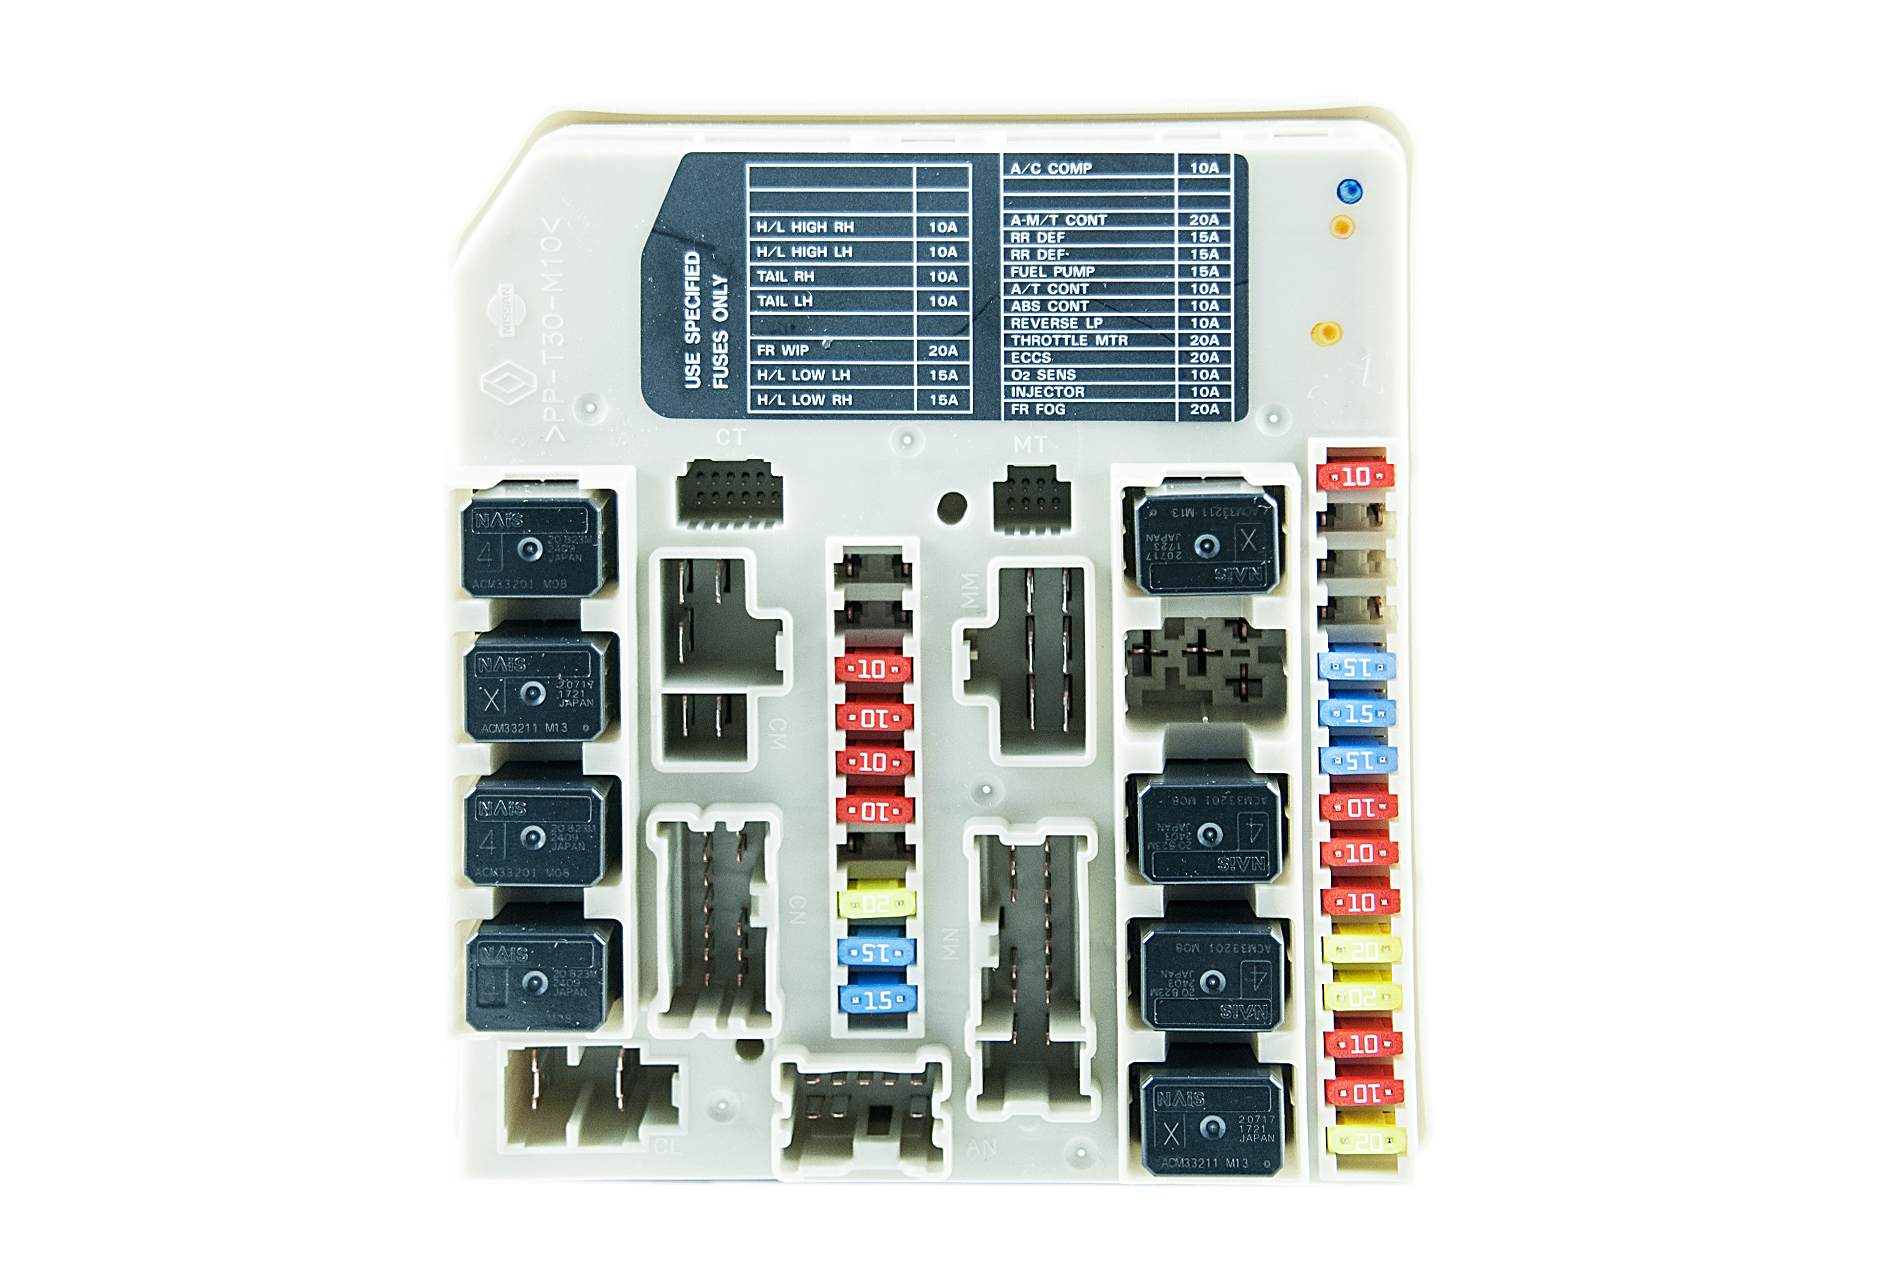 284B7AX61Aa nissan genuine micra note ipdm power distribution module nissan note fuse box layout at virtualis.co